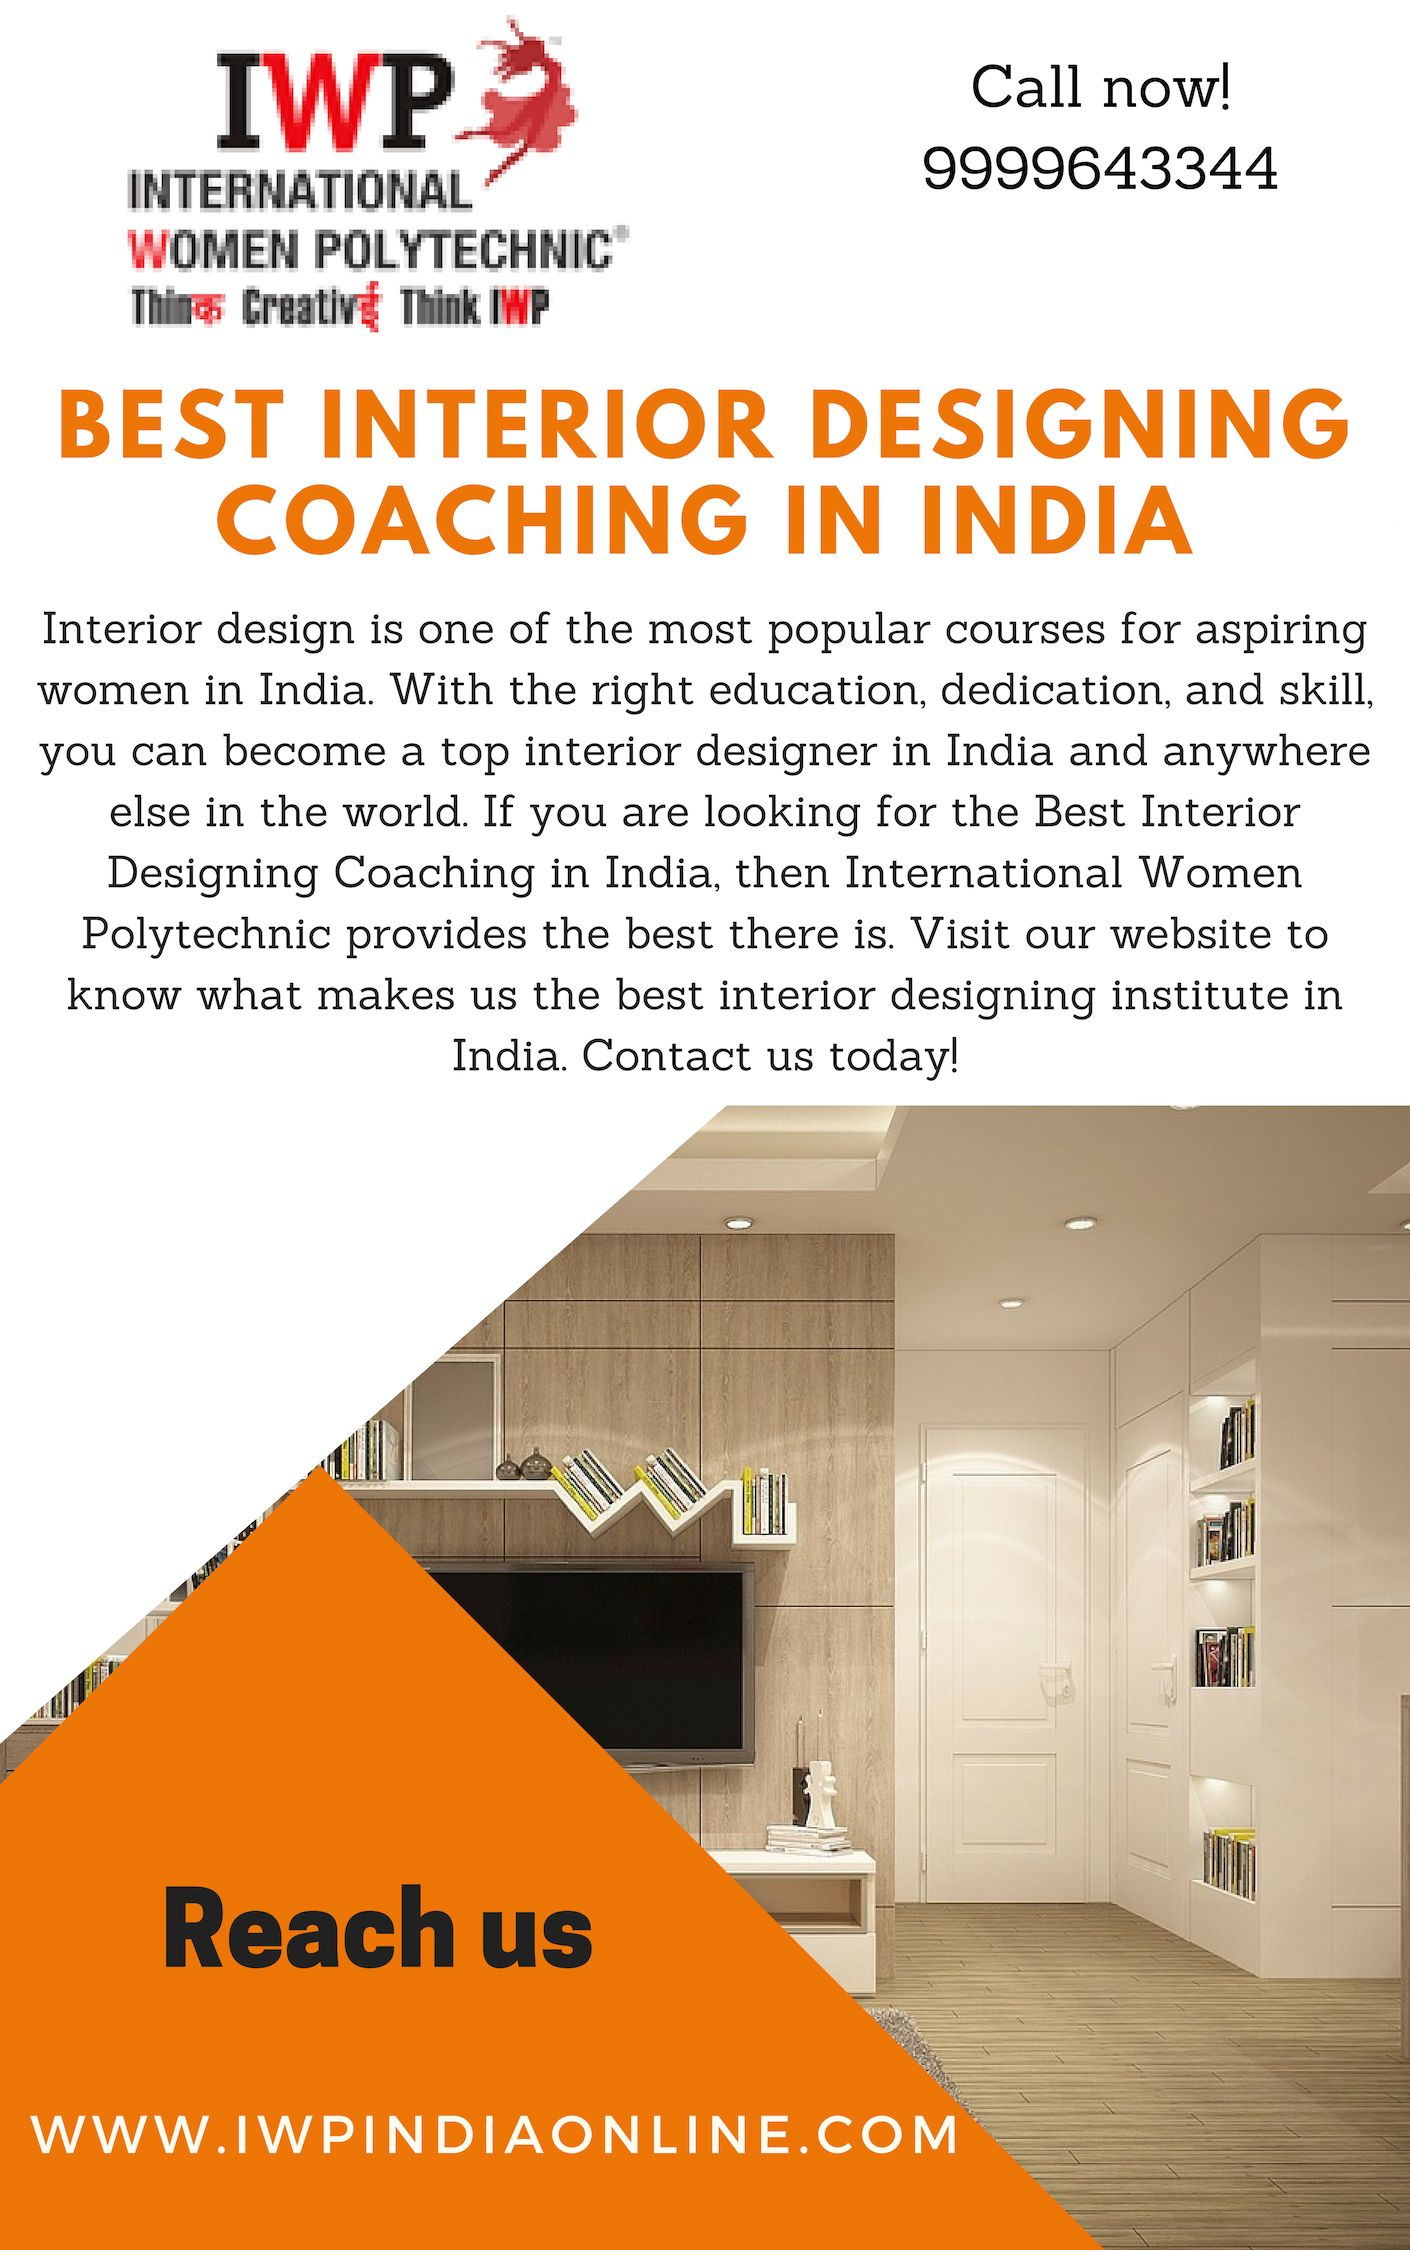 Iwp Is One Of The Best Interior Designing Coaching In India We Offer A Wide Range Of Courses Tha Interior Designers In Hyderabad Interior Design Best Interior